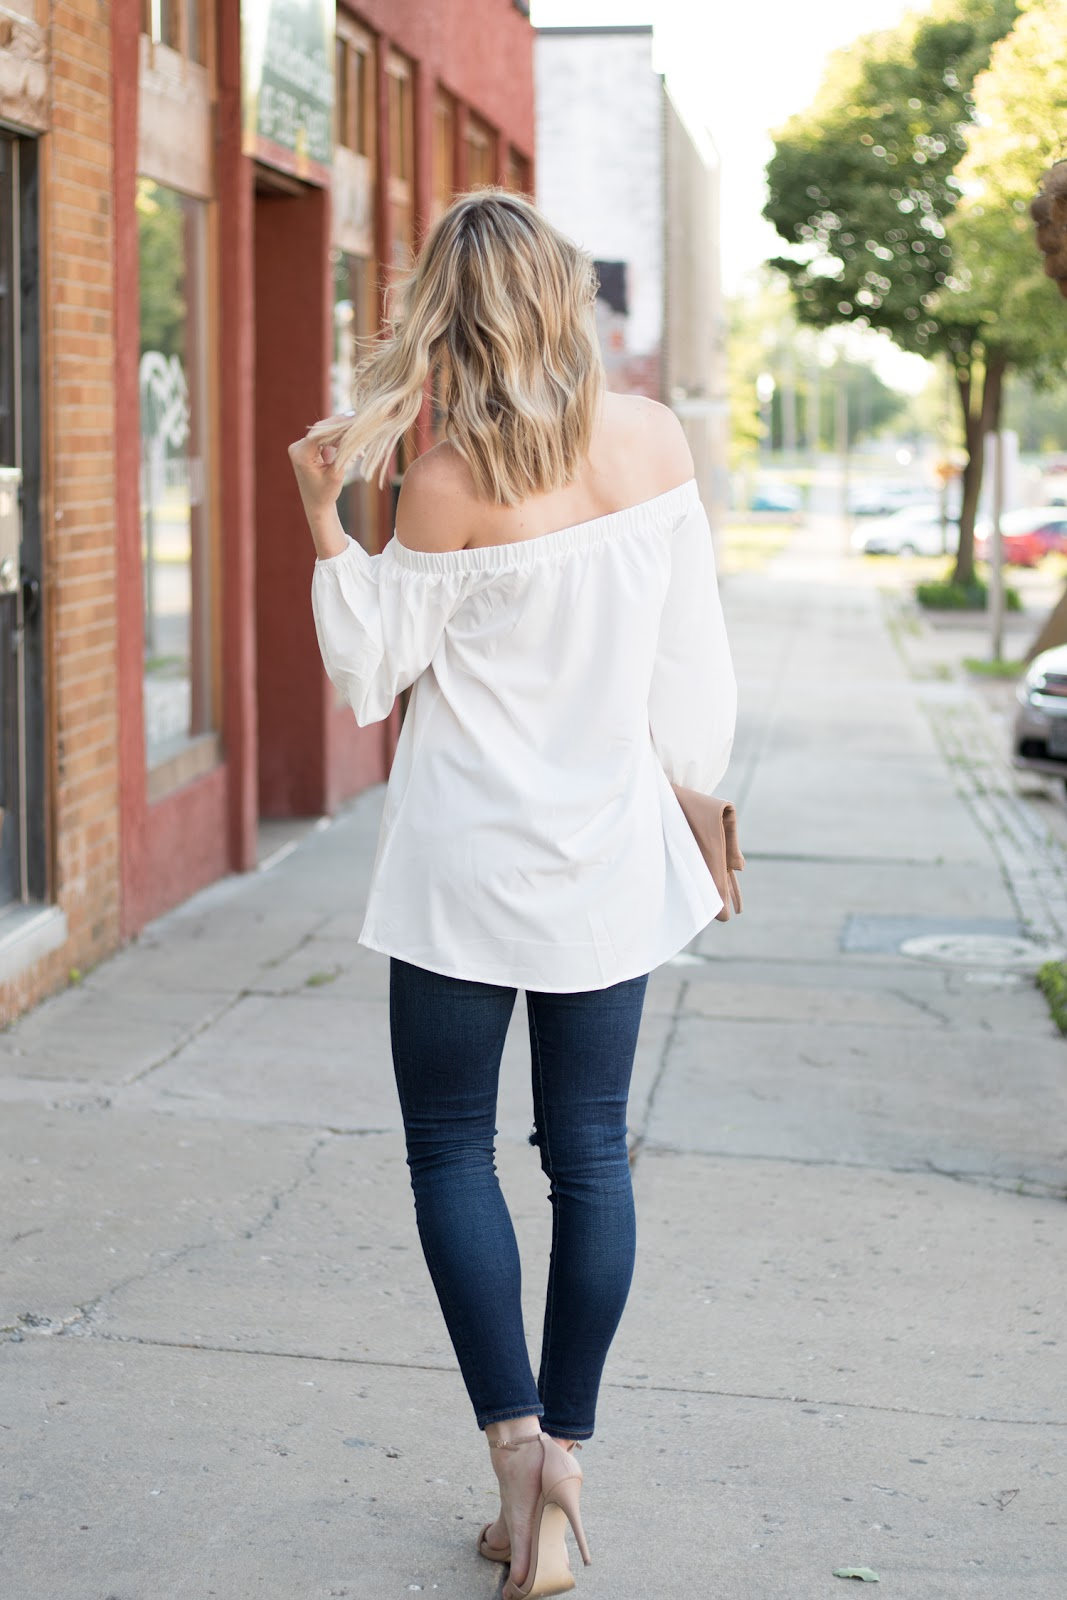 Off the shoulder top with jeans